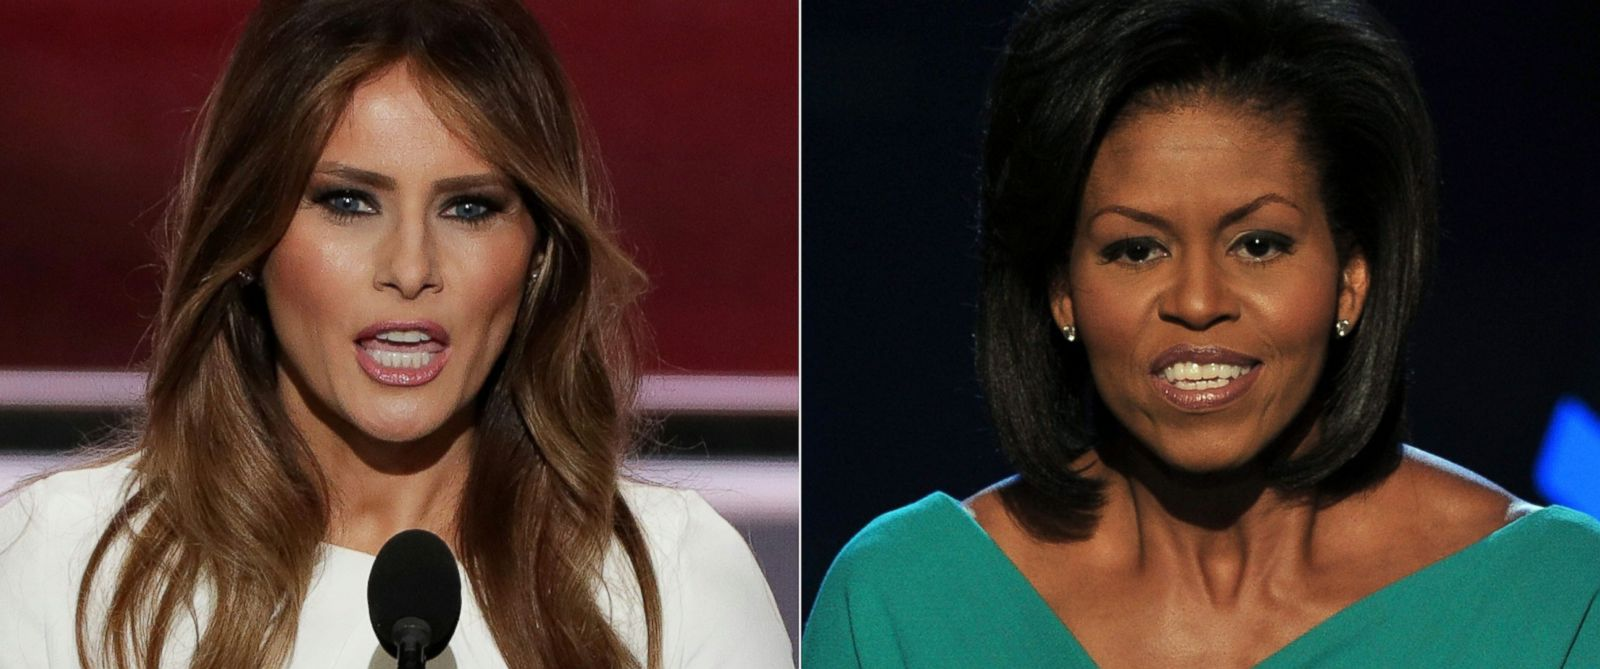 PHOTO: Melania Trump speaks to the Republican National Convention on July 18, 2016 in Cleveland and Michelle Obama speaks to the Democratic National Convention in 2008 in Denver.